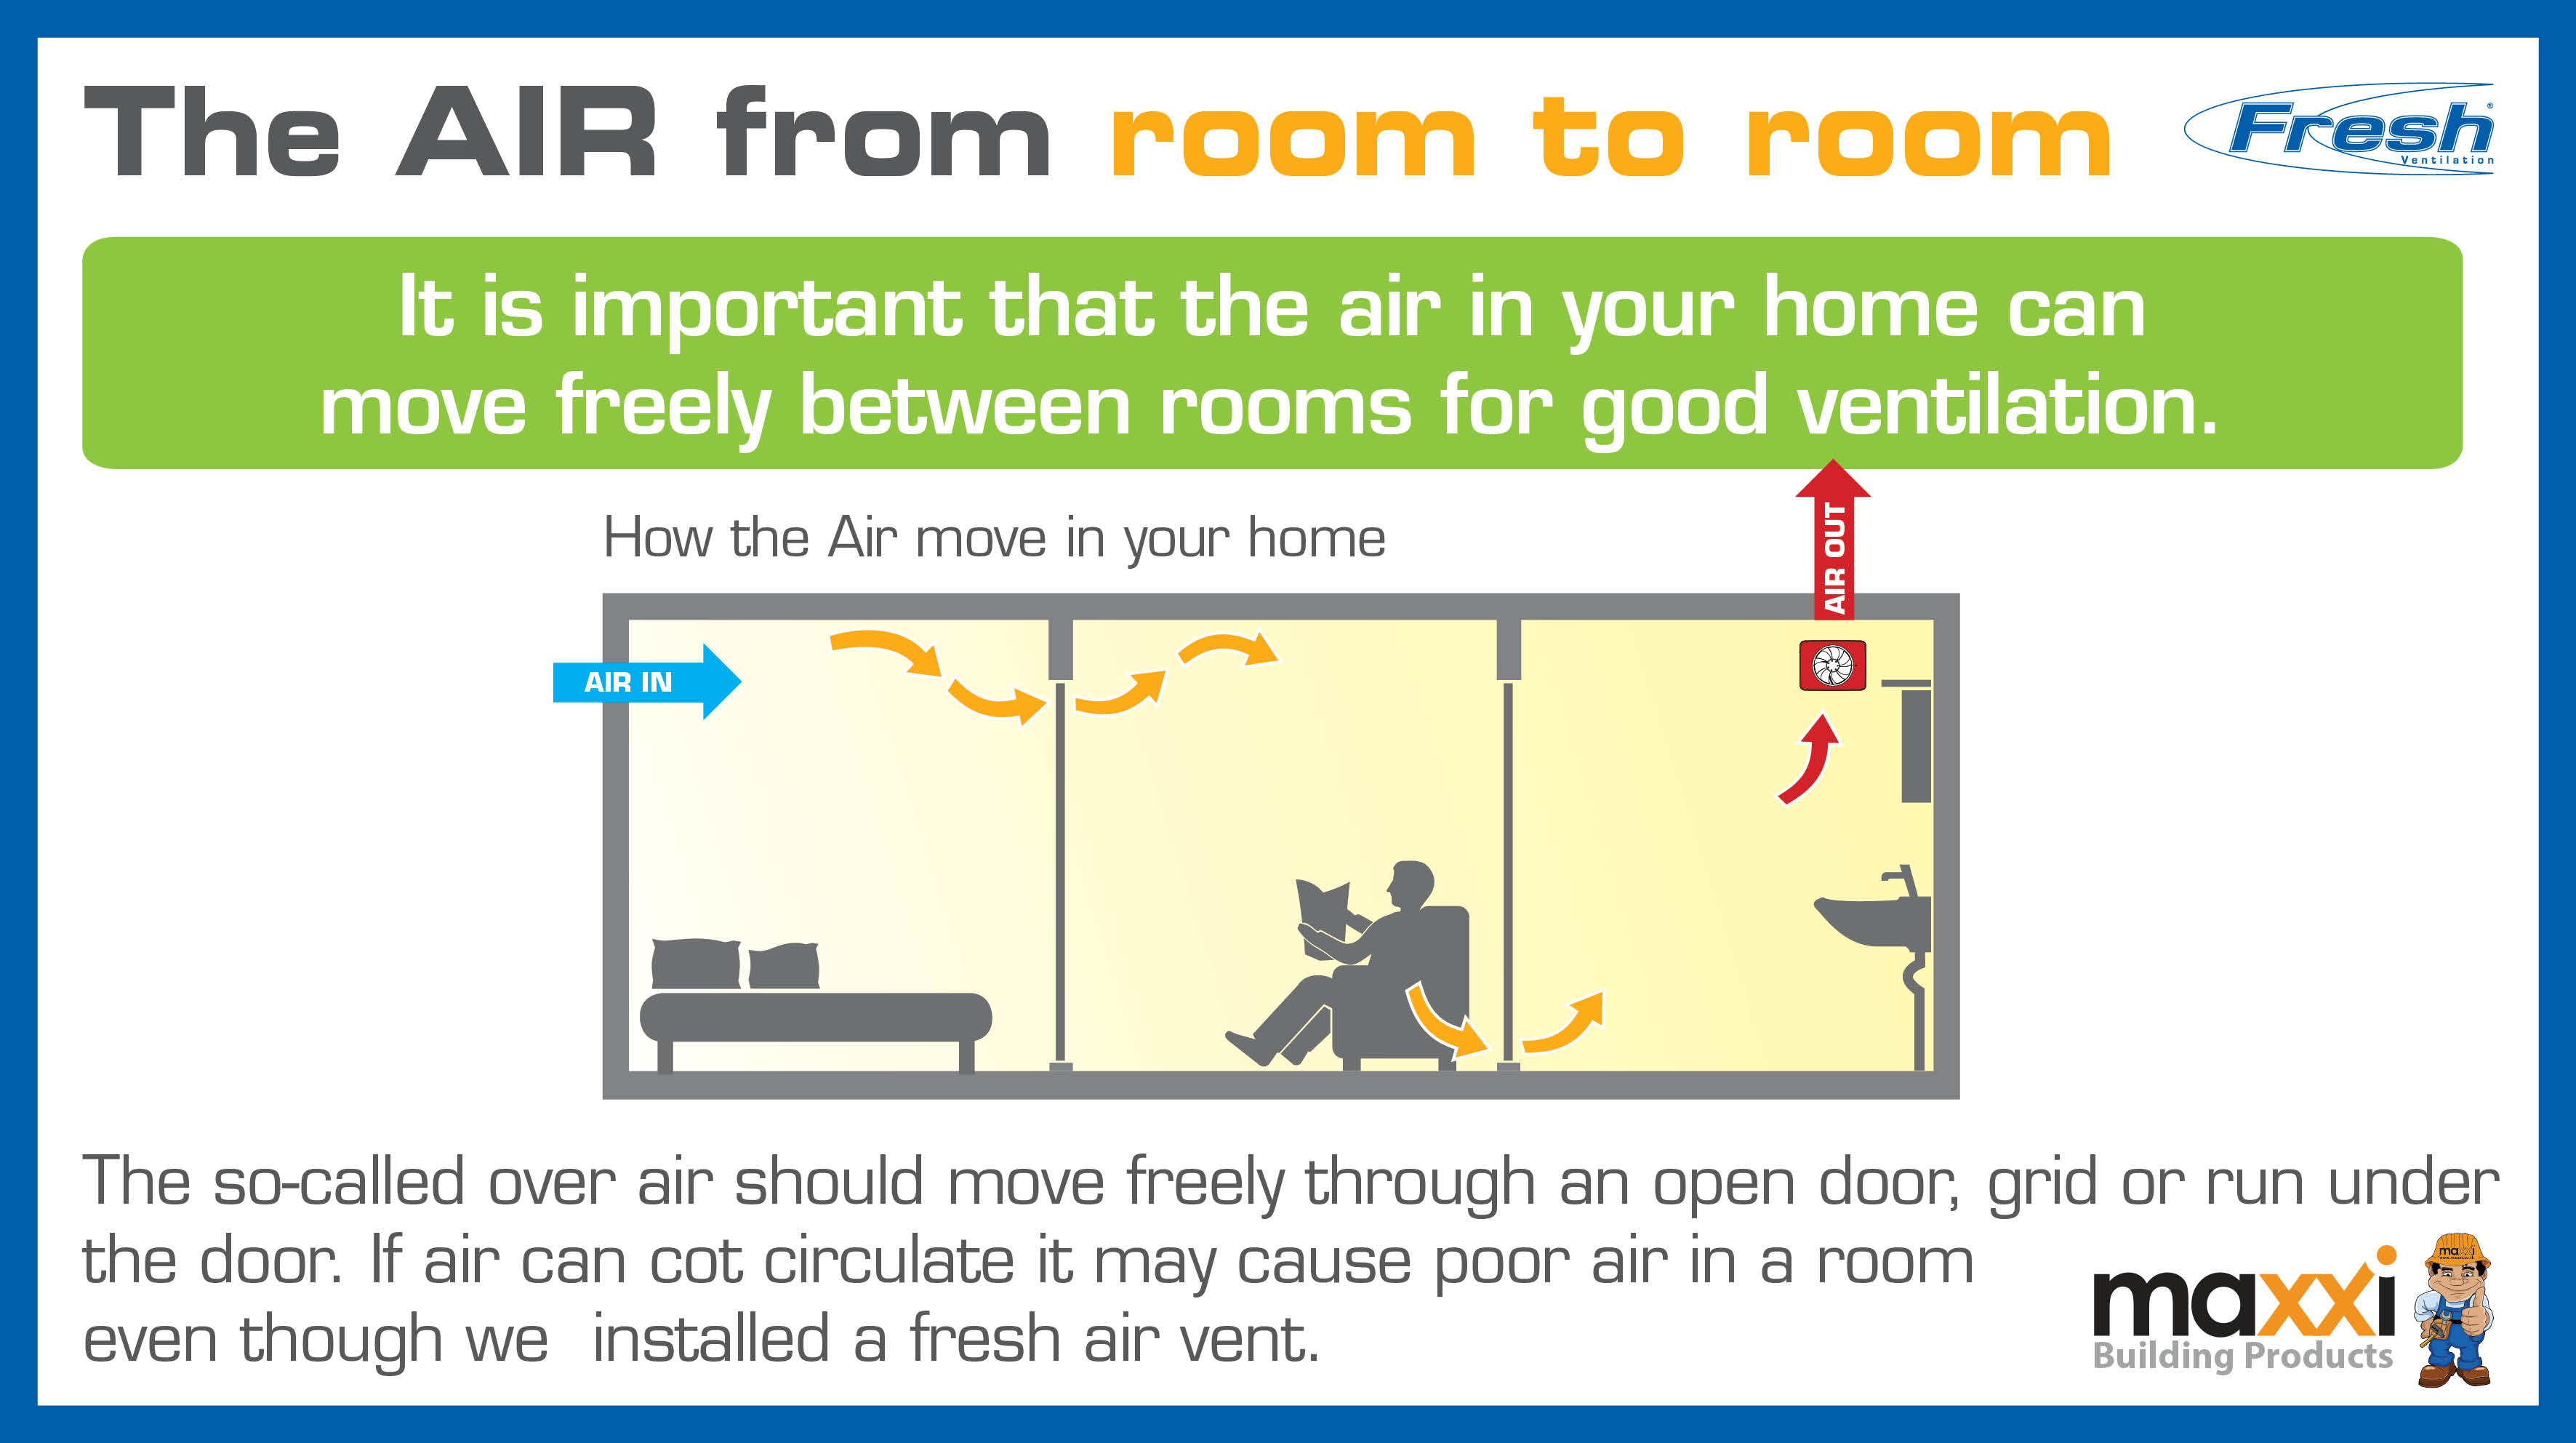 Ventilation from room to room